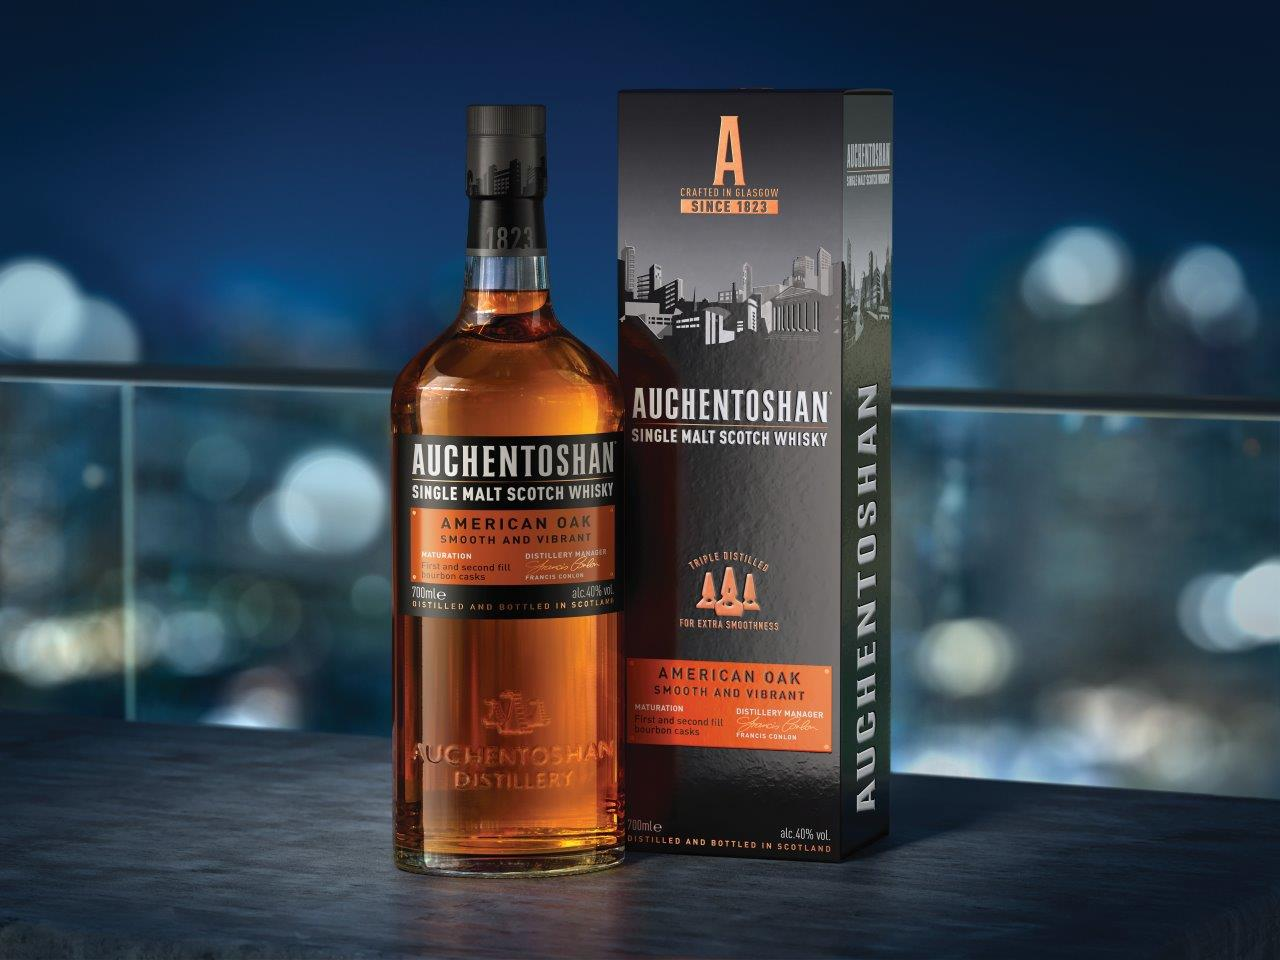 Auchentoshan, Auchentoshan Whisky's Chic New Urban Packaging, @WhiskeyBlogger, @WhiskeyBlogger